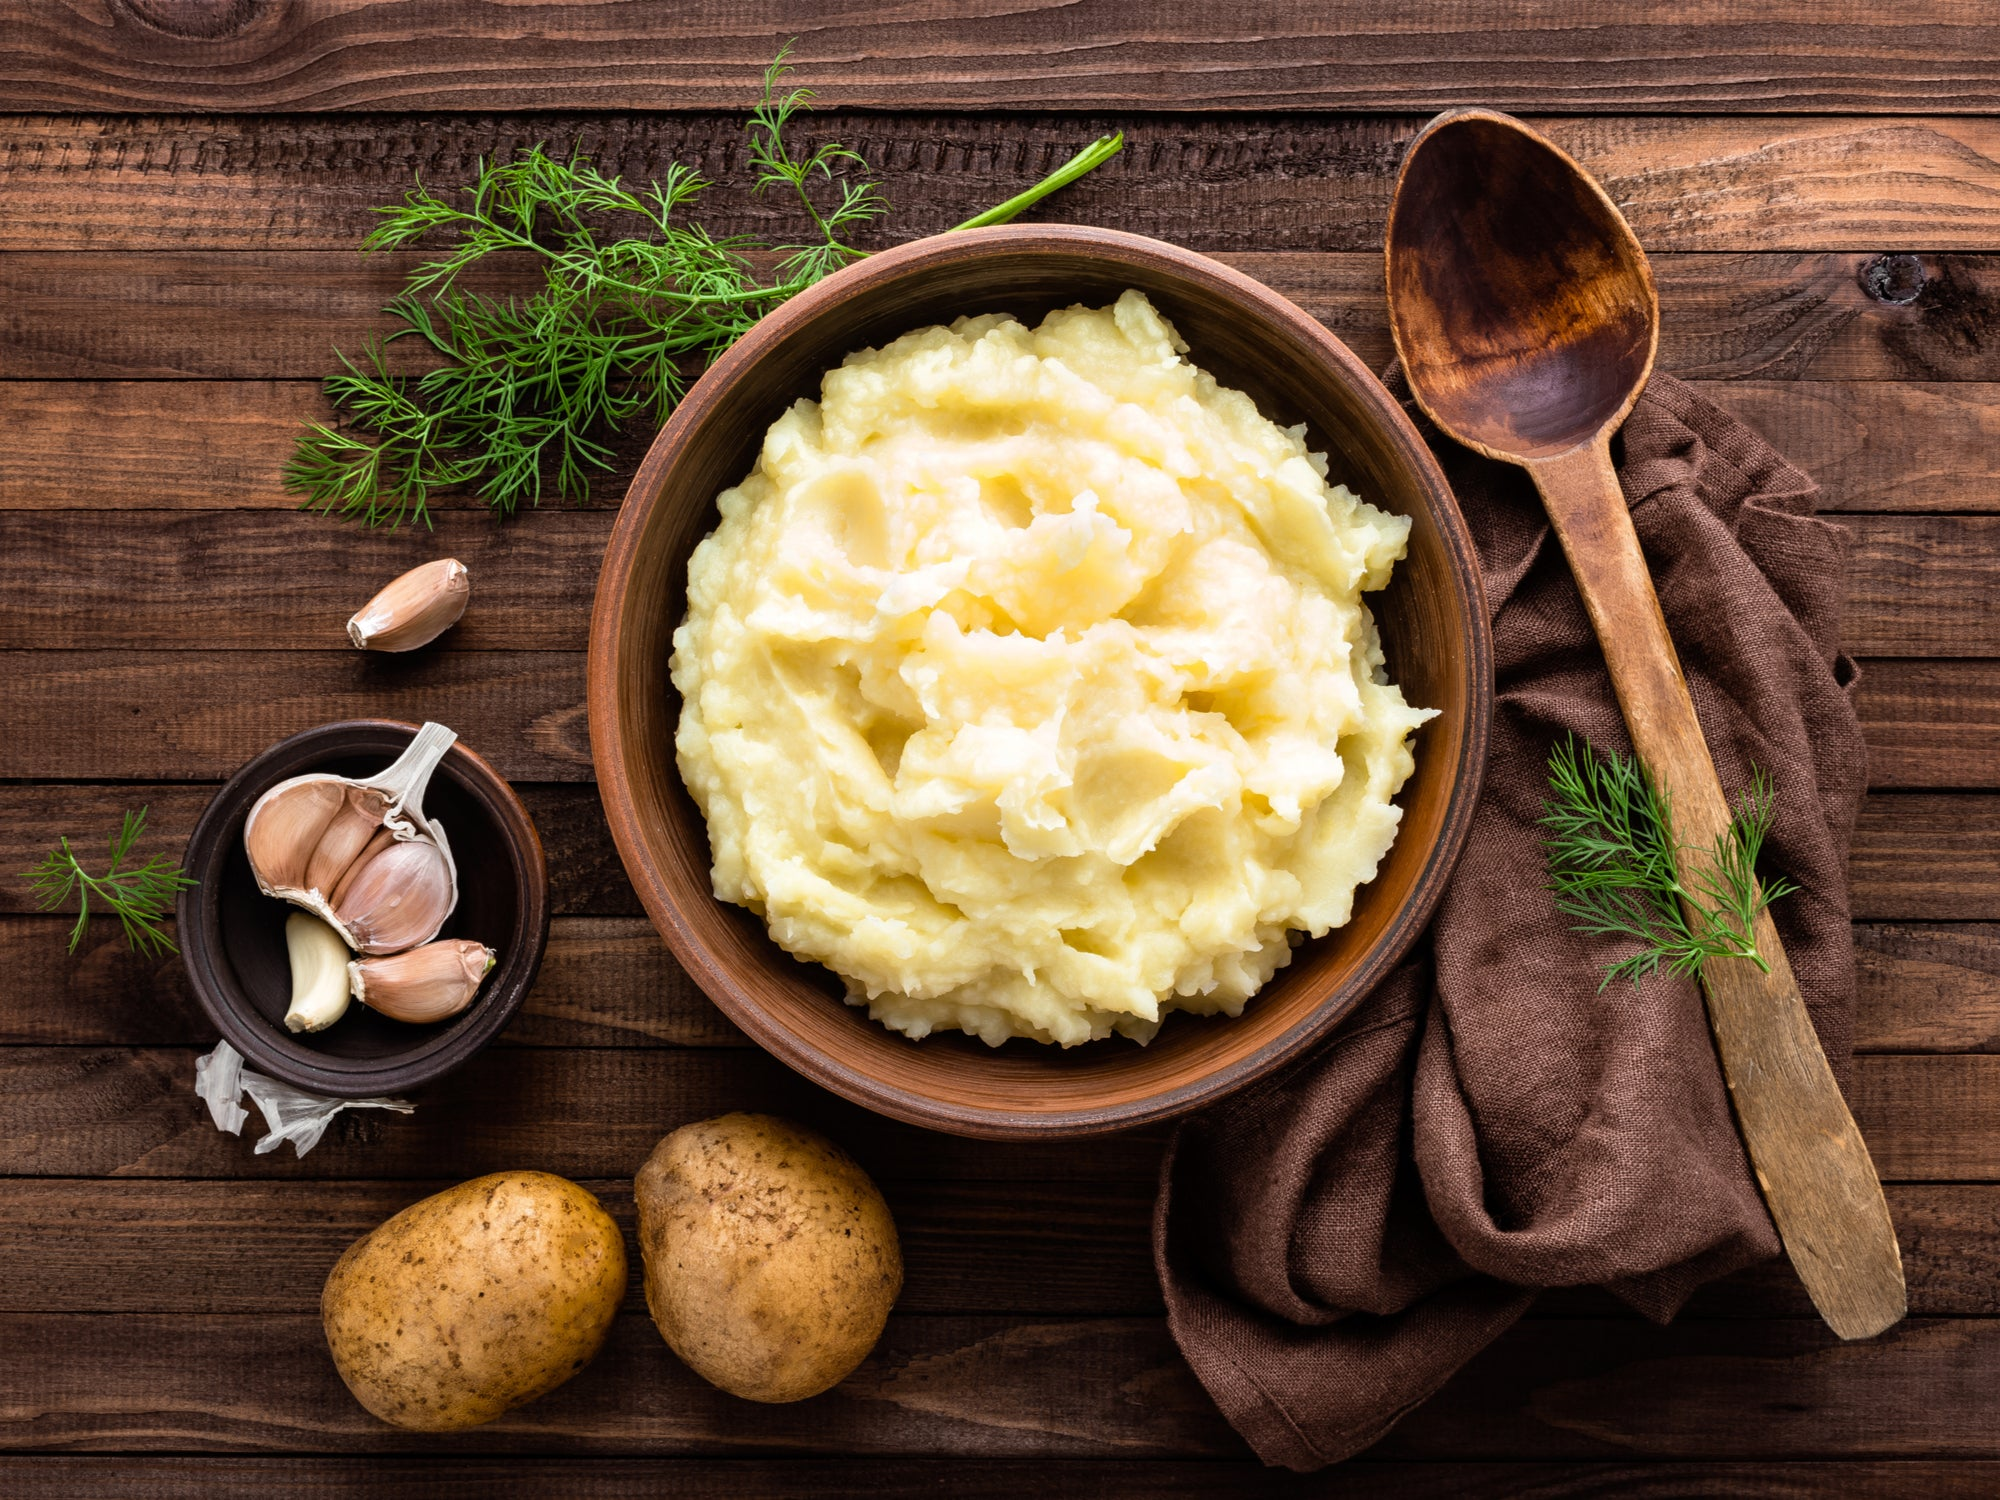 Loaded Mashed Potatoes Made in the Kalorik MAXX Air Fryer Oven